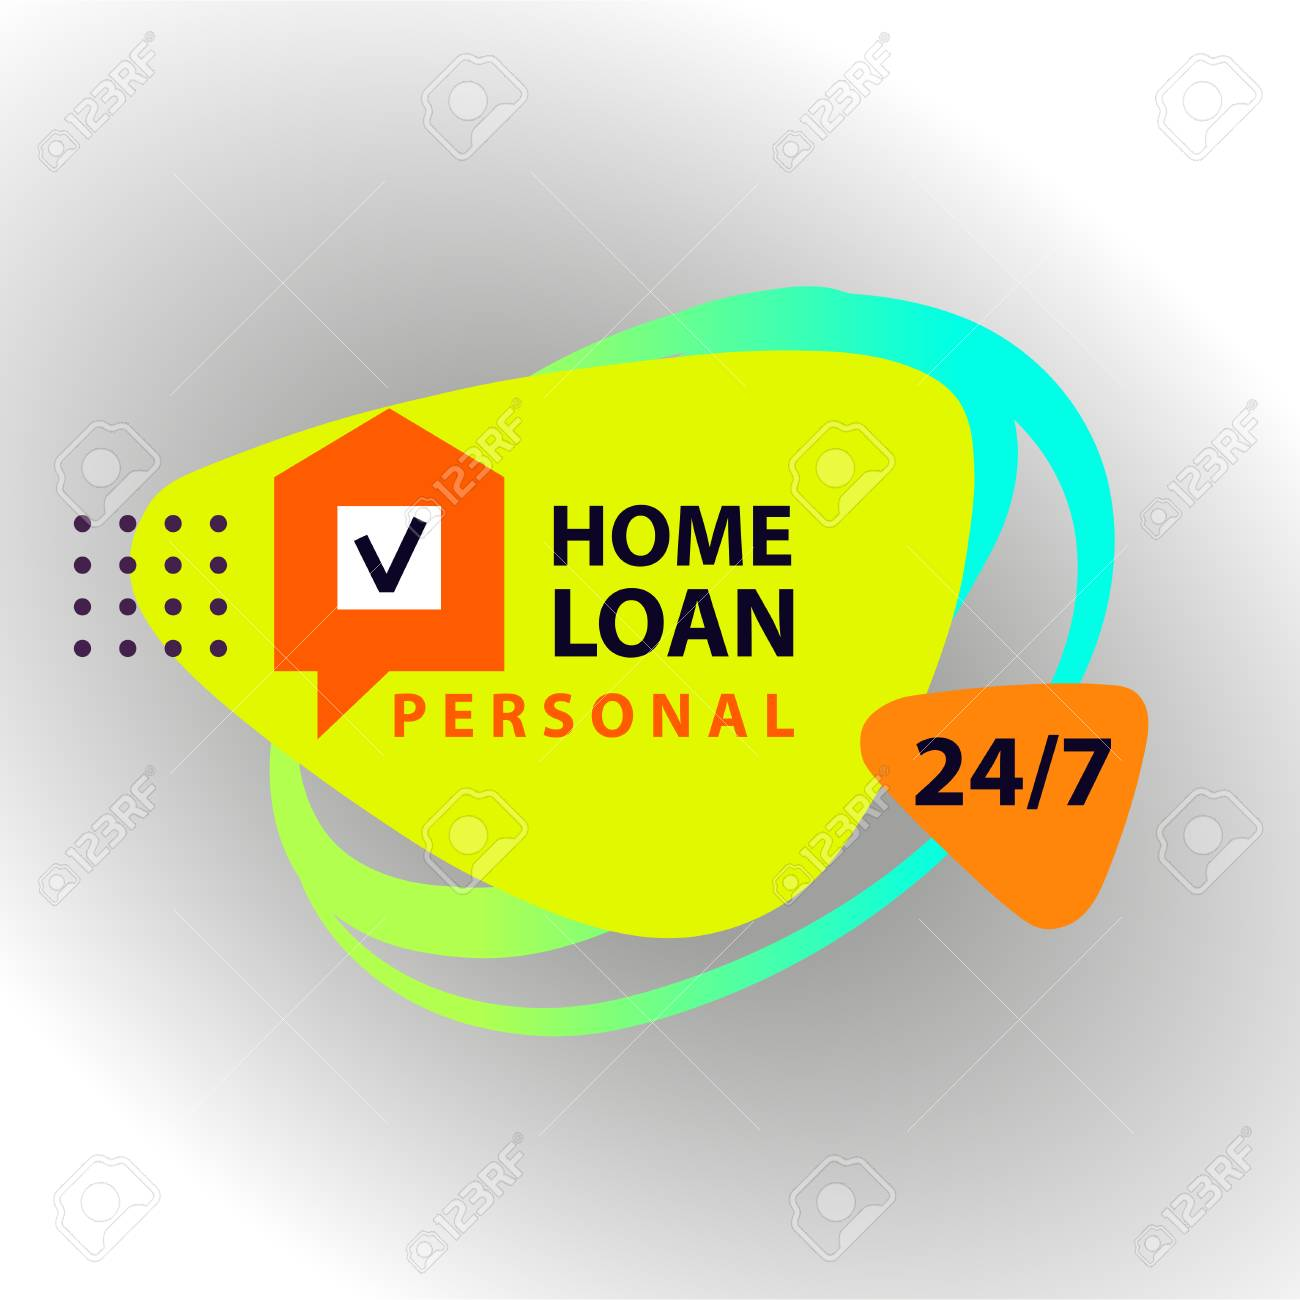 Home loan template financial sign logo badge with plan house home loan template financial sign logo badge with plan house exclusive personal maxwellsz